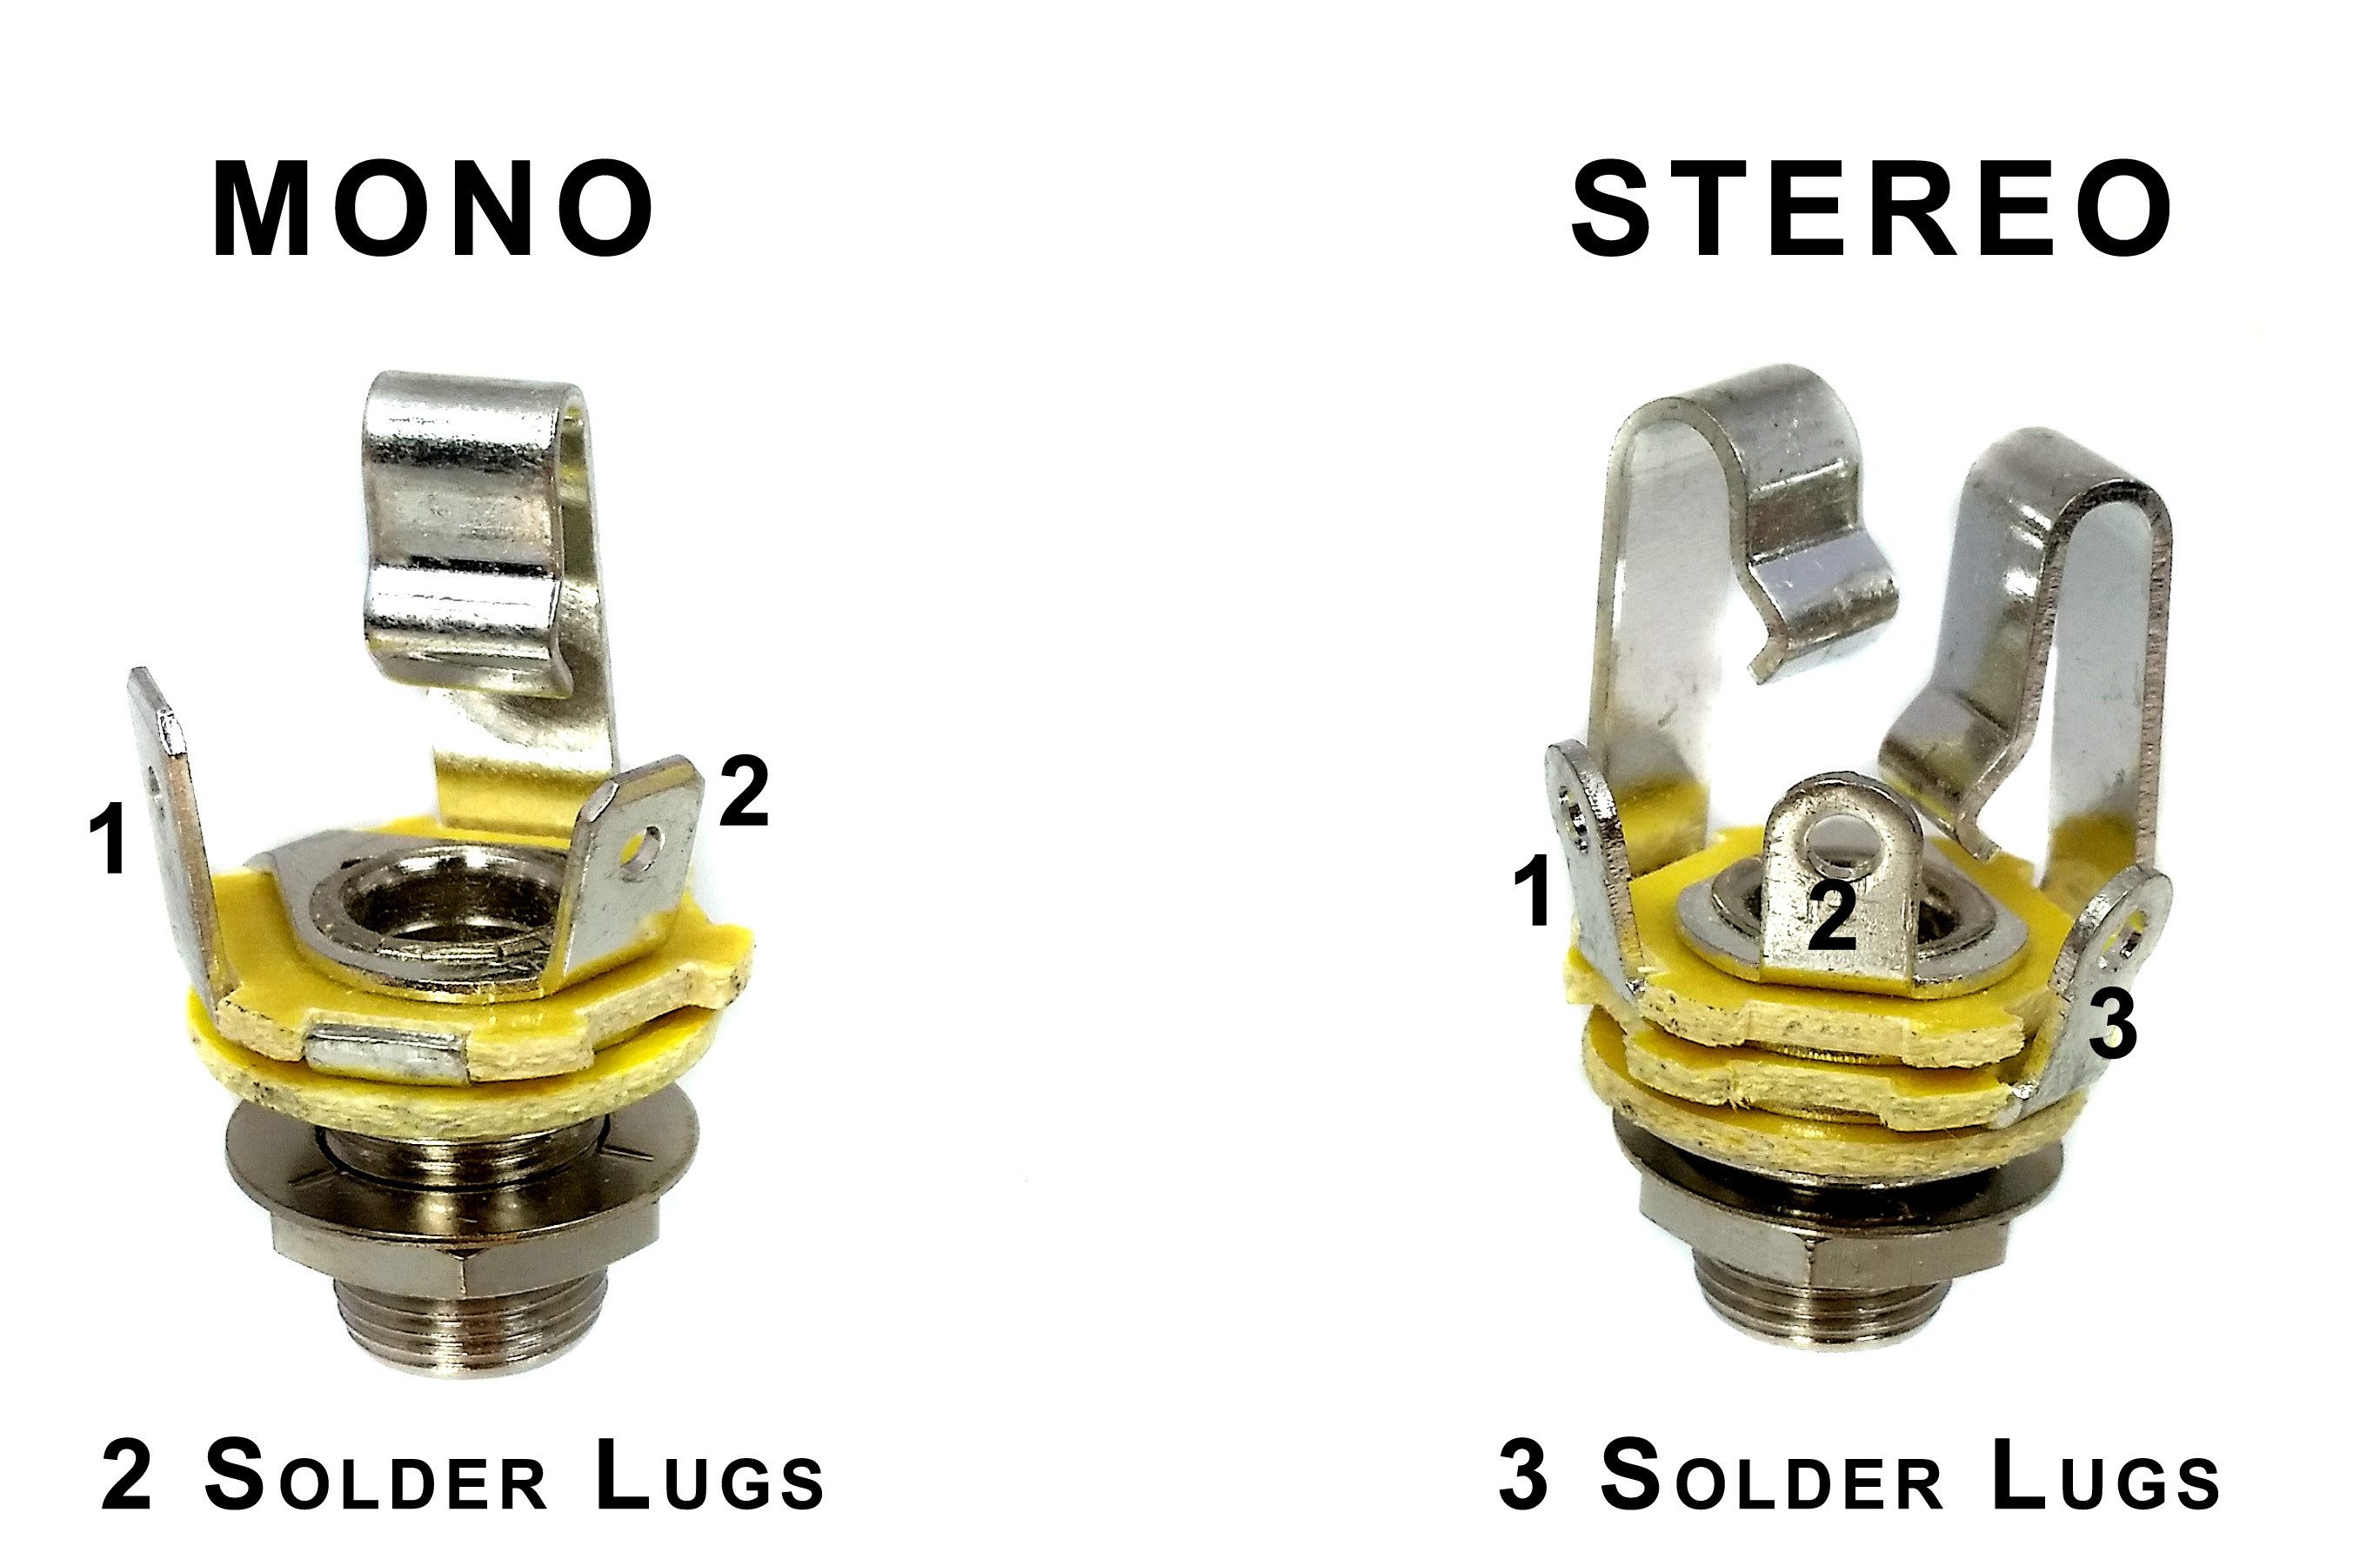 The differences between mono and stereo phone jacks.